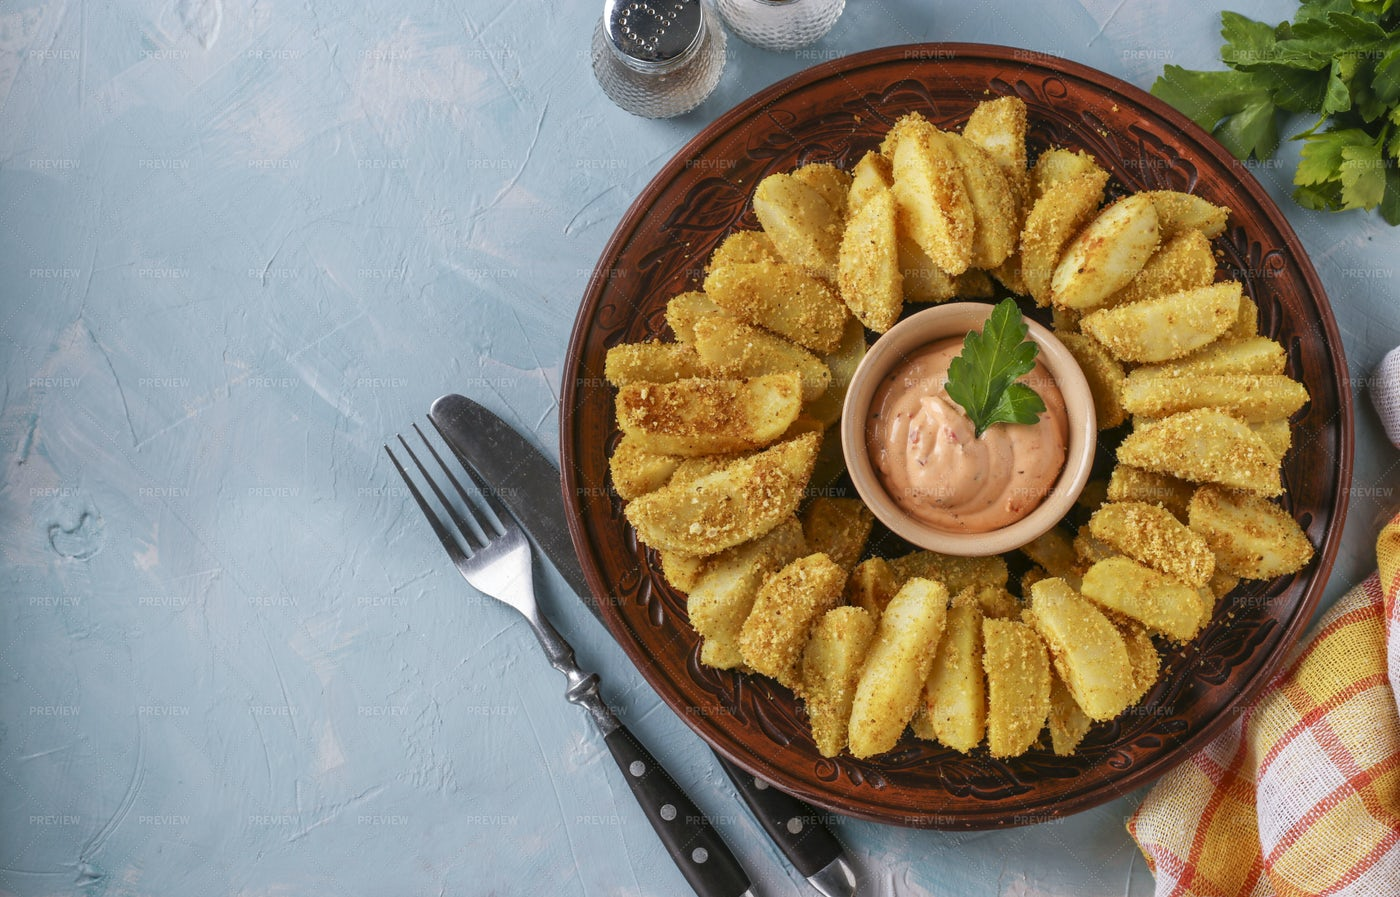 Baked Potatoes On A Round Plate: Stock Photos